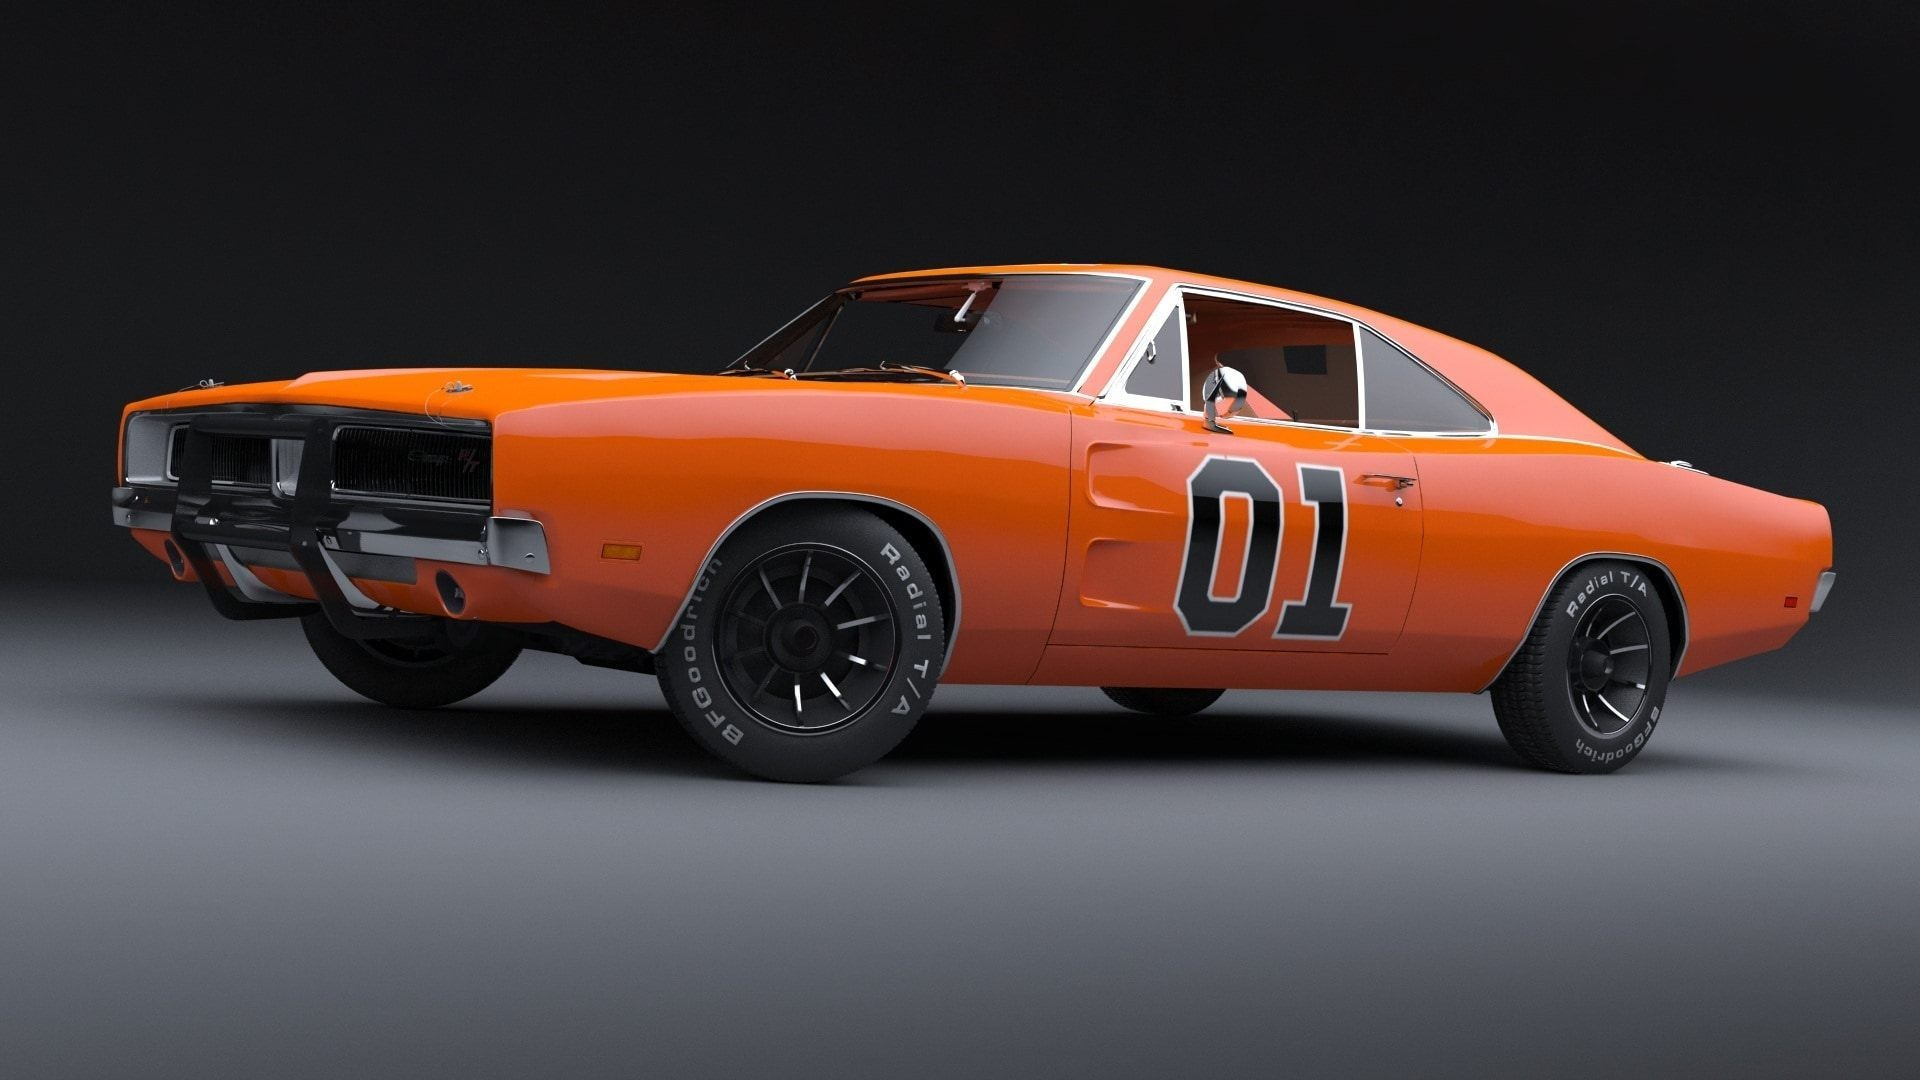 1920x1080 Orange 01 Diecast Coupe Free Image Peakpx Dodge Charger General Lee  Wallpaper